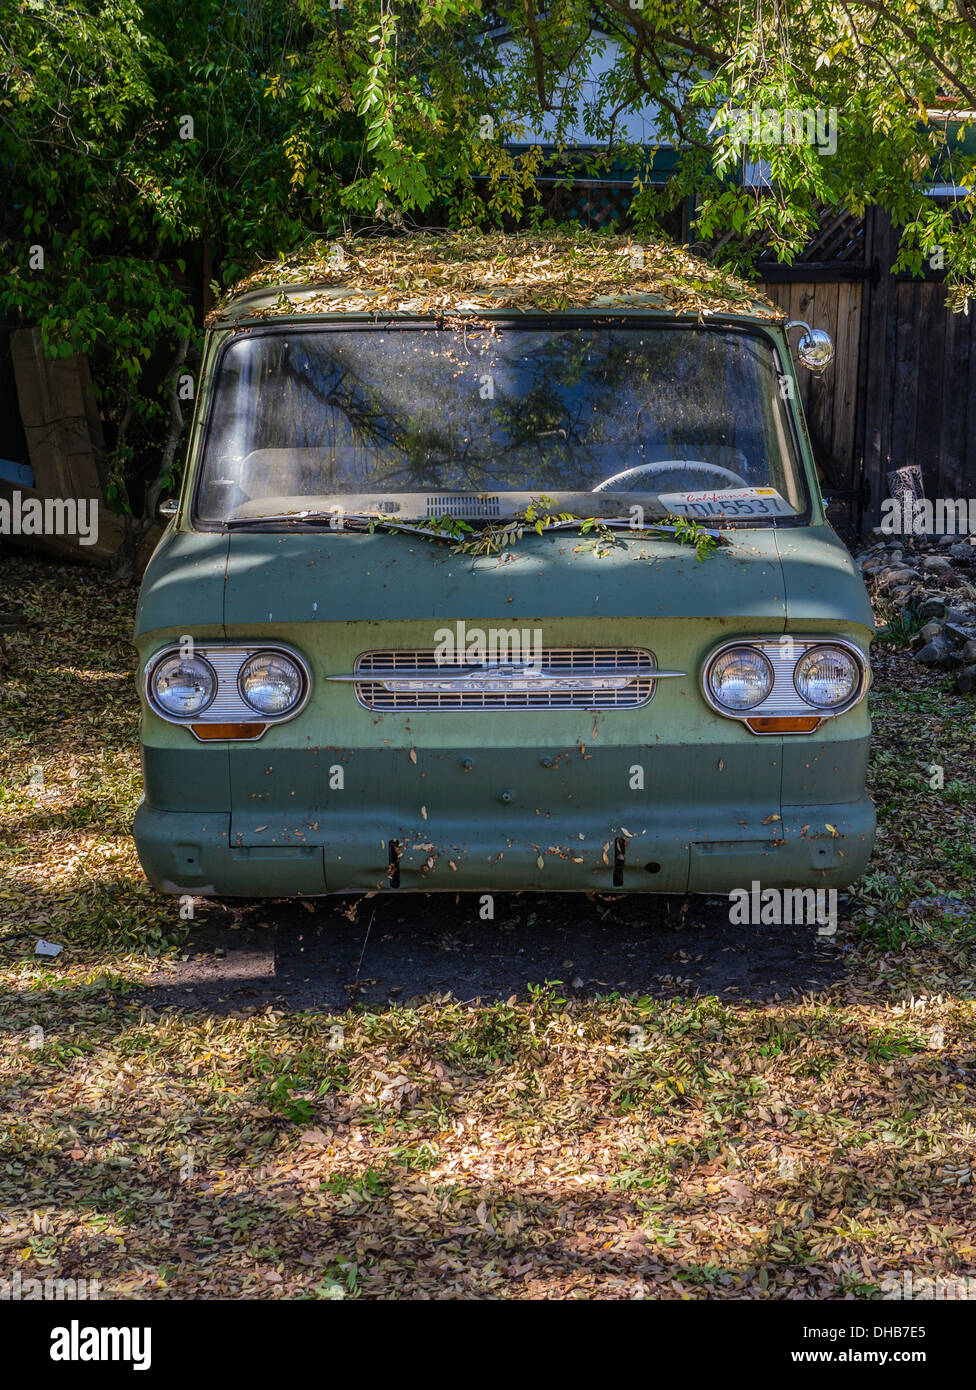 An old Chevrolet van sits, ignored, in a driveway in Ojai, California almost completely covered with autumn leaves. - Stock Image